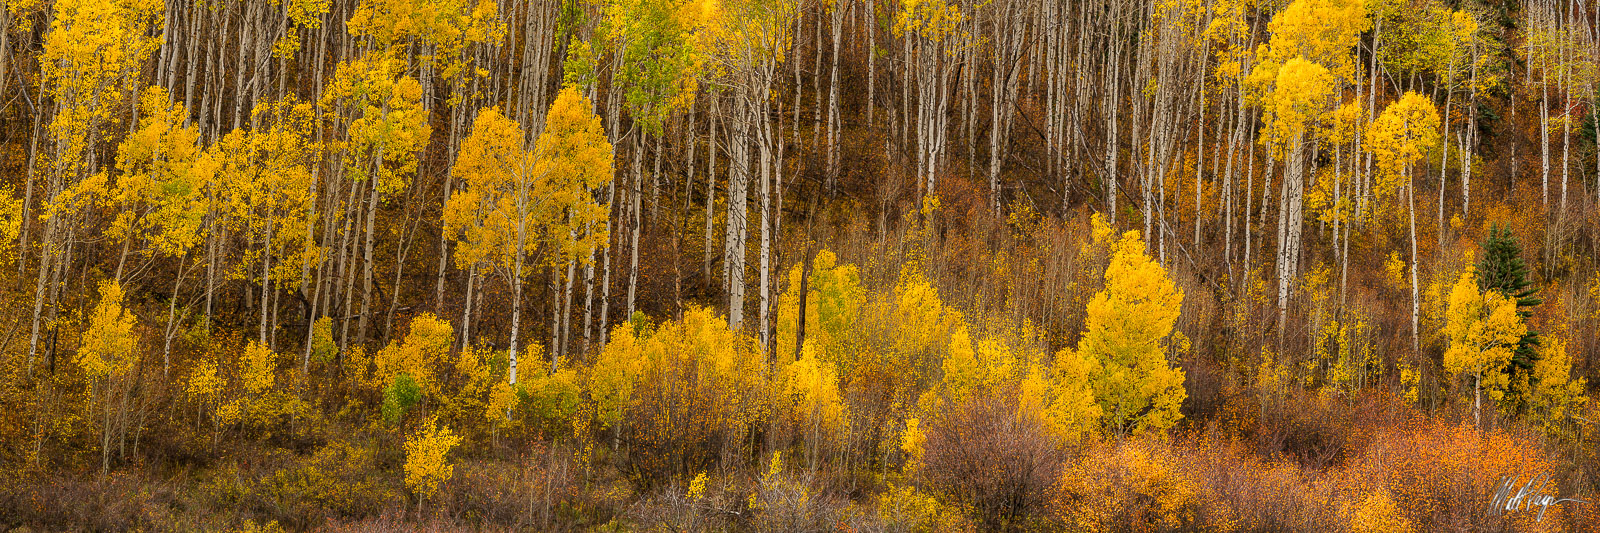 Aspen Trees, Autumn, Colorado, Fall, Fall Colors, Landscape, Panorama,  colorful, warm, Landscape Photography, photo